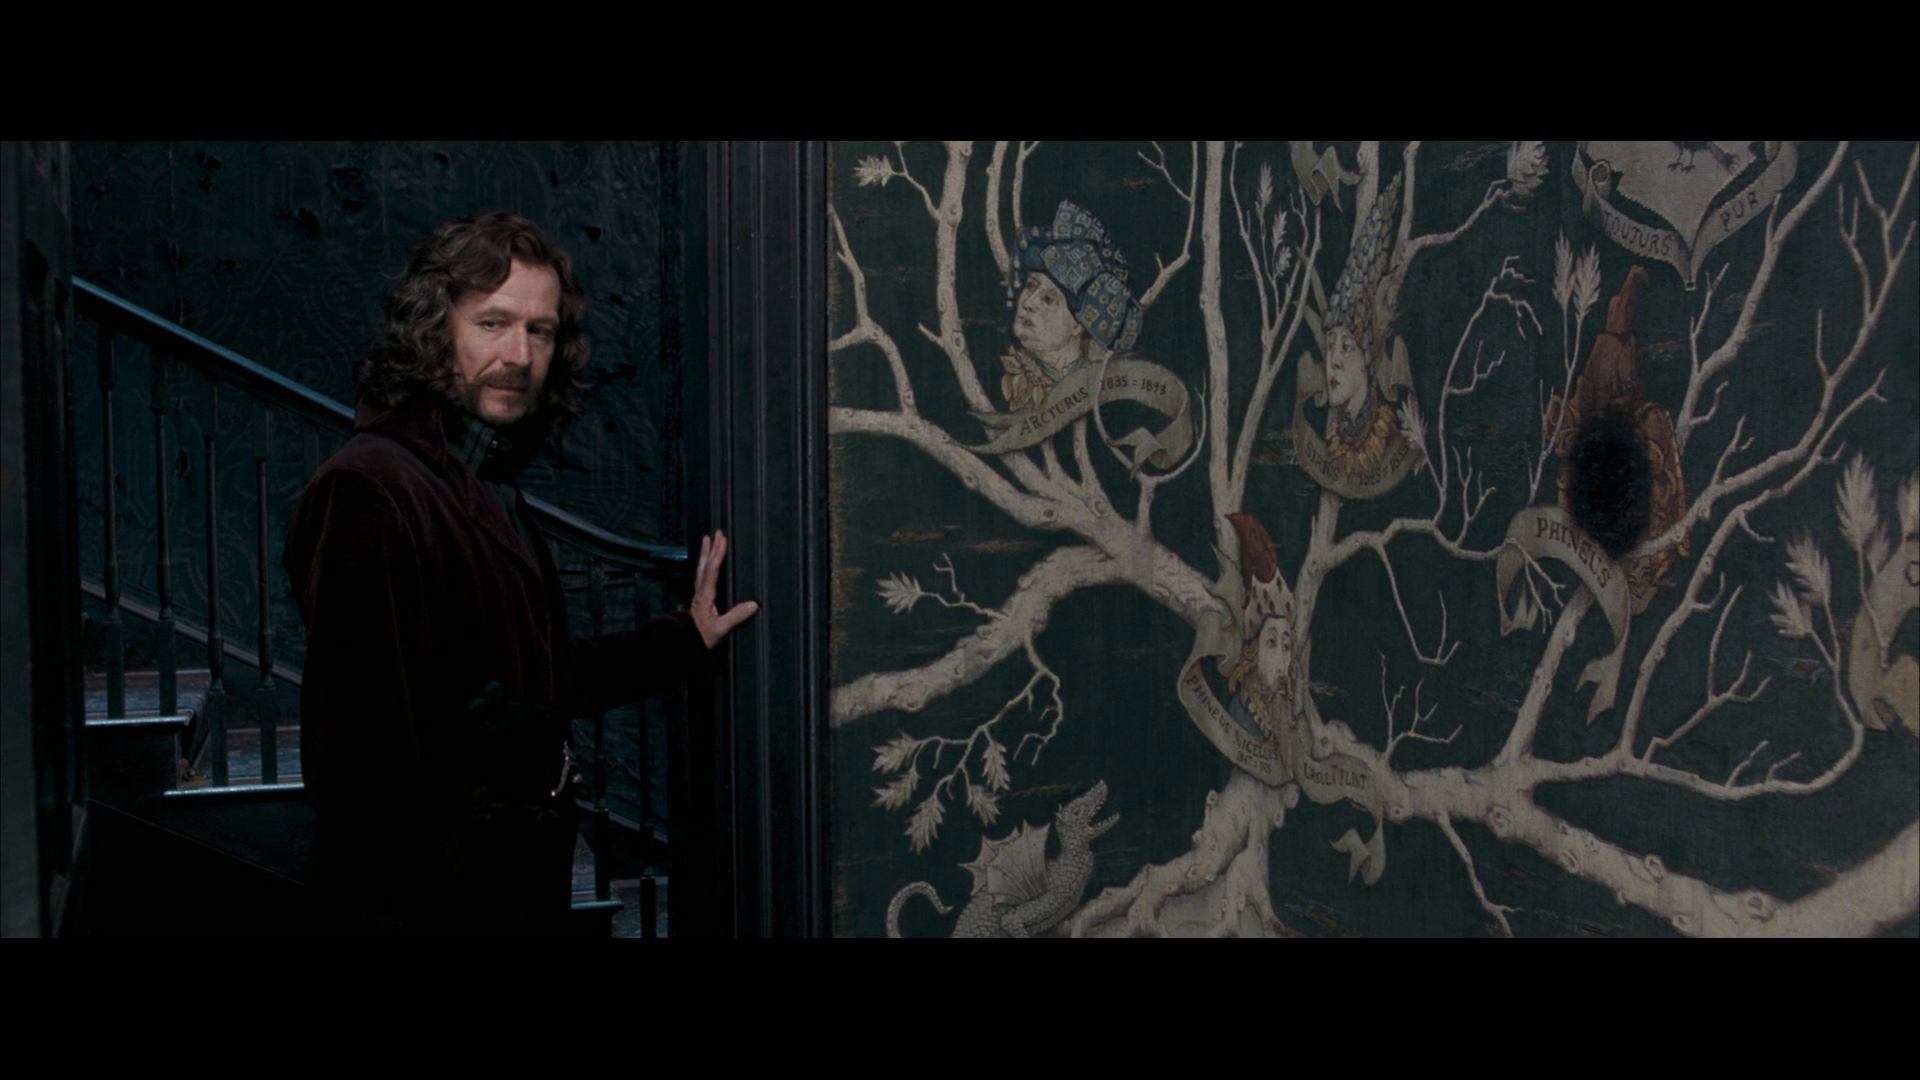 Harry Potter Wall Mural Sirius Black Images Order Of The Phoenix Hd Wallpaper And